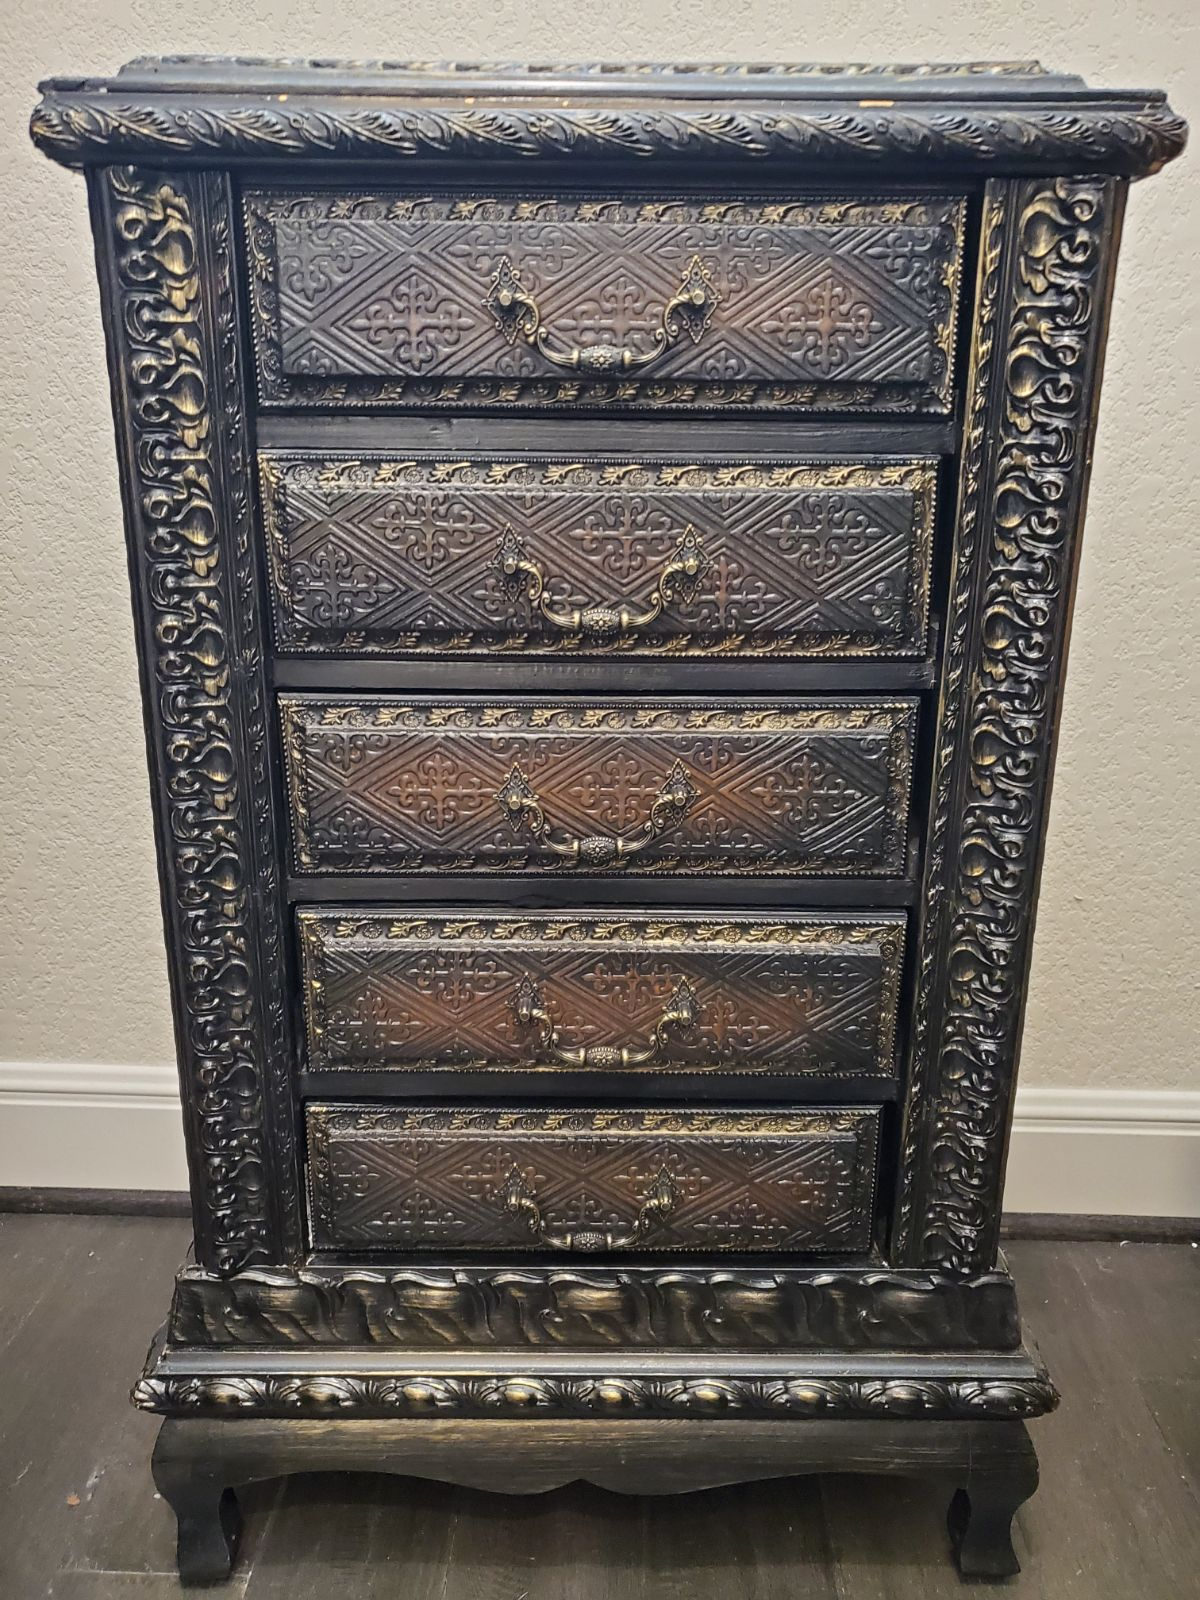 5-Drawer Designer Chest